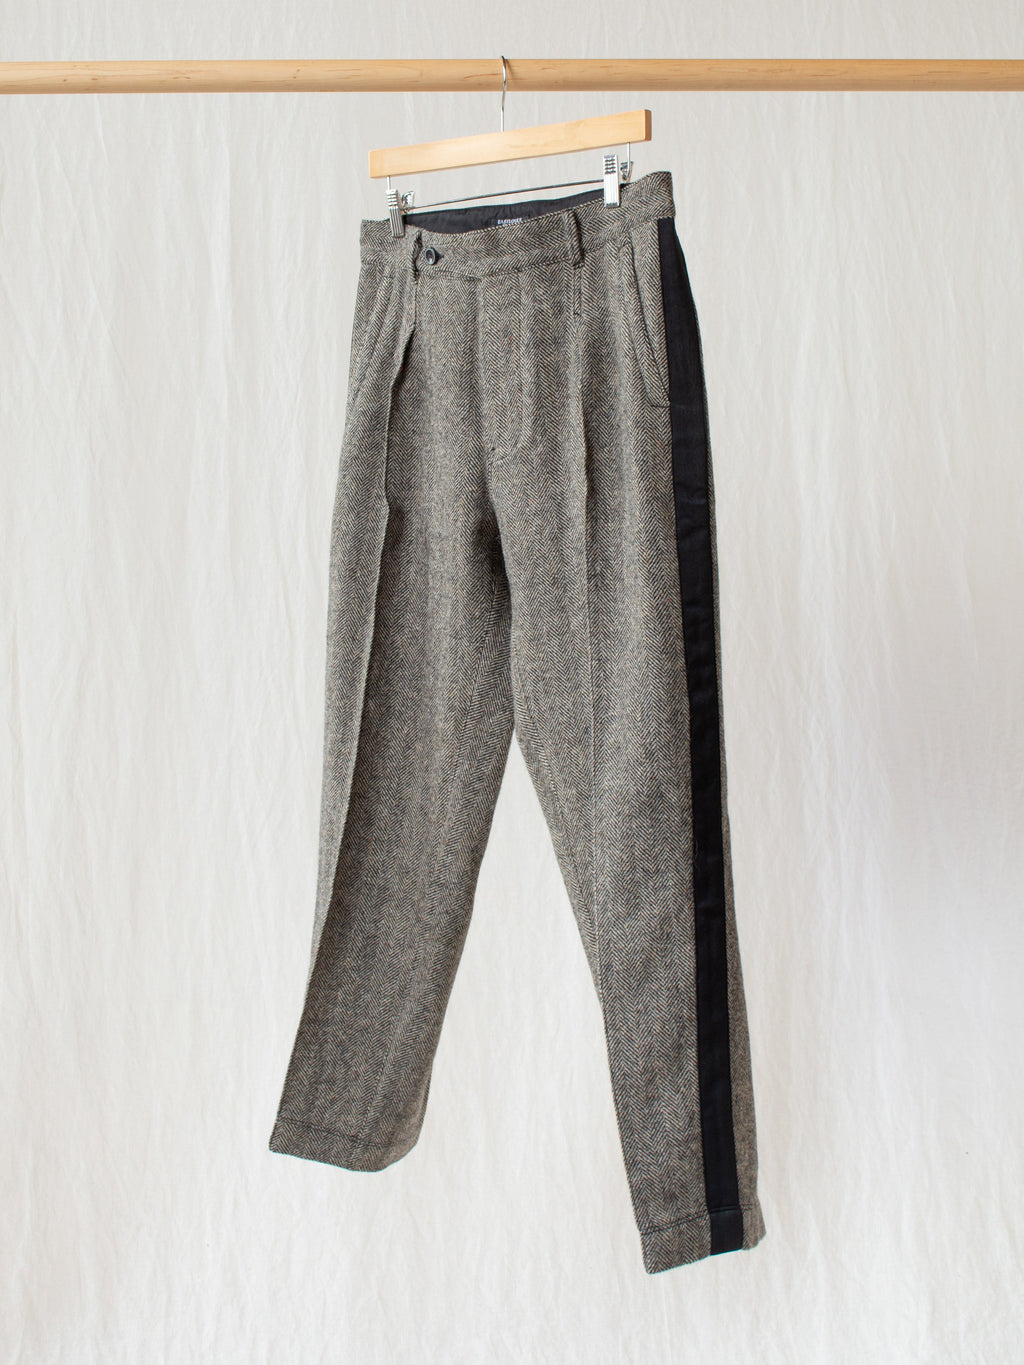 Namu Shop - Eastlogue Officer Pants - Black & Beige Herringbone